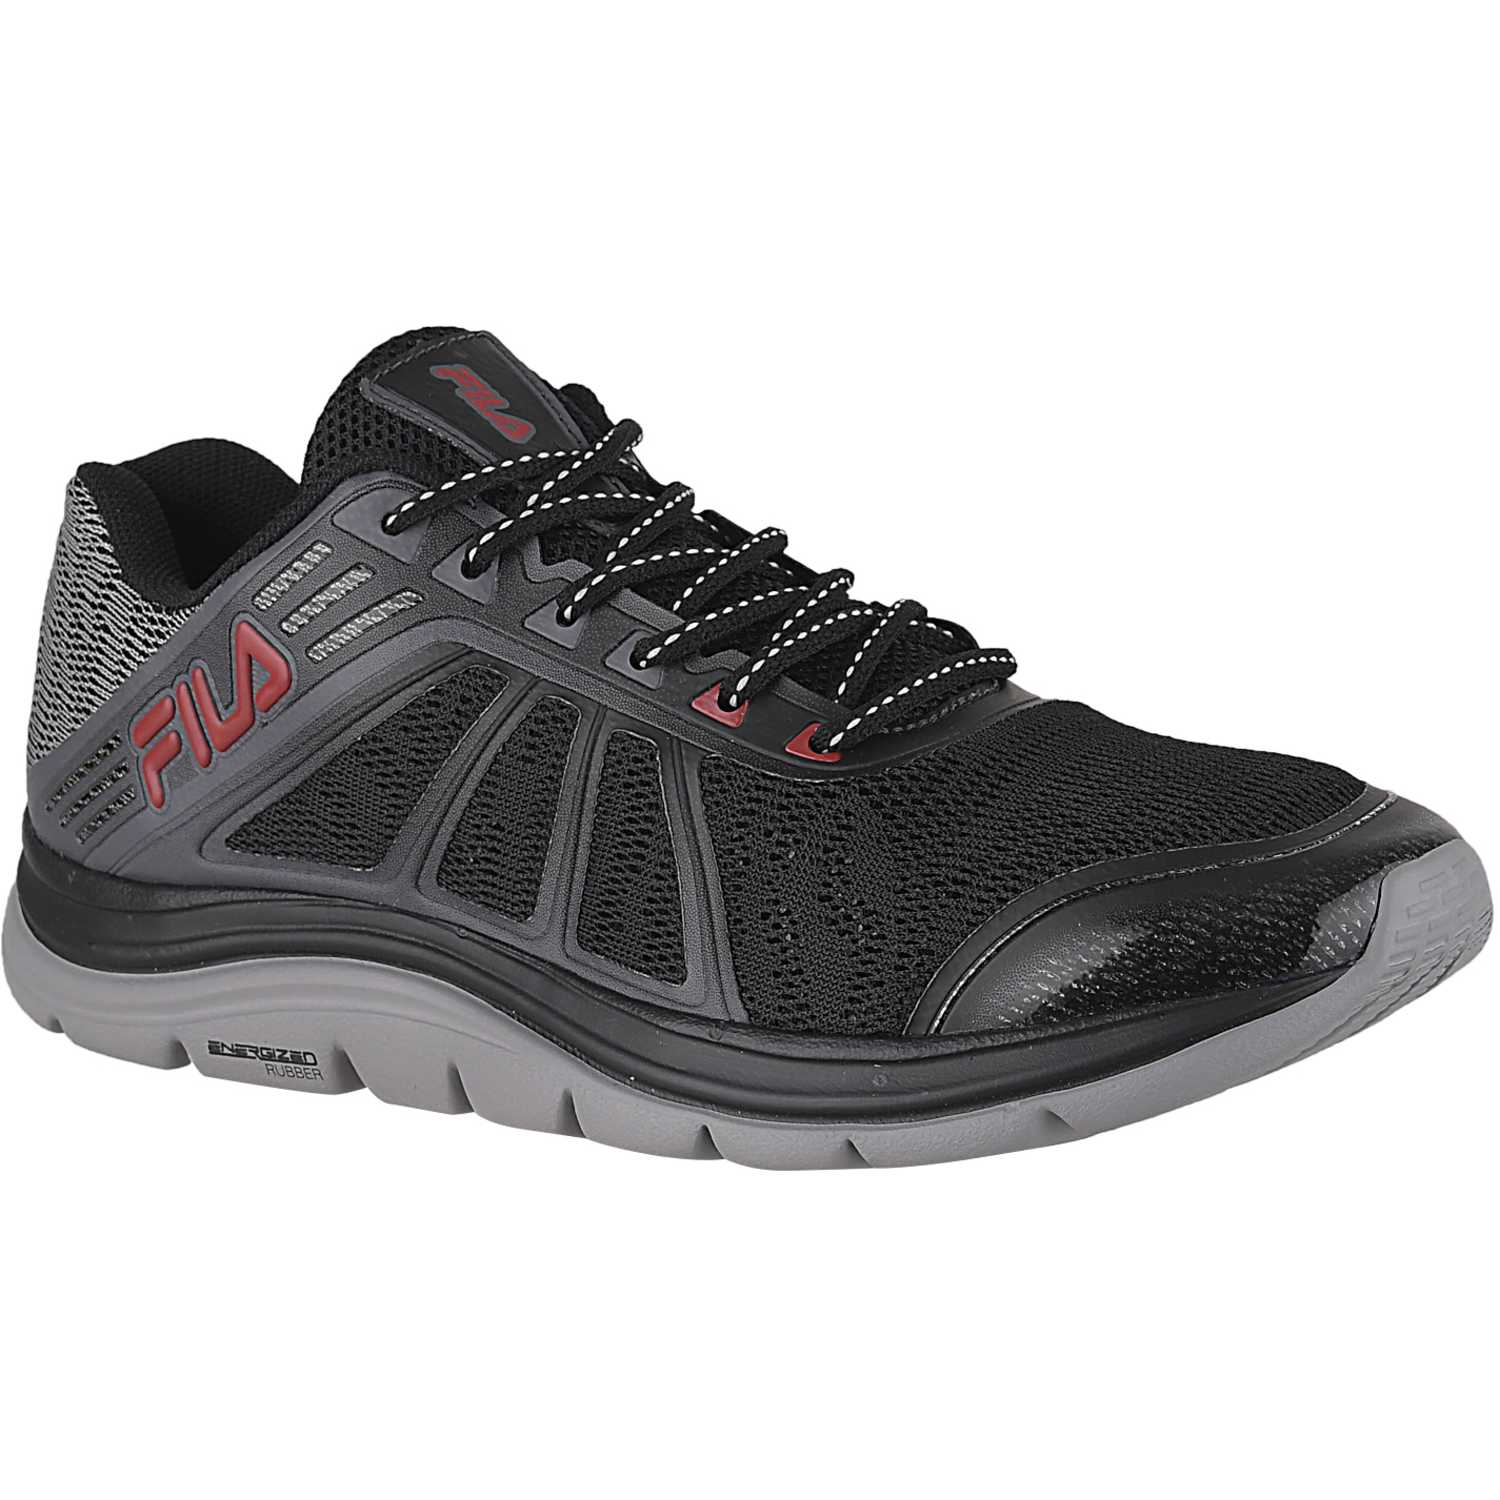 Fila FILA SPIRIT 2.0 Gris / rojo Walking